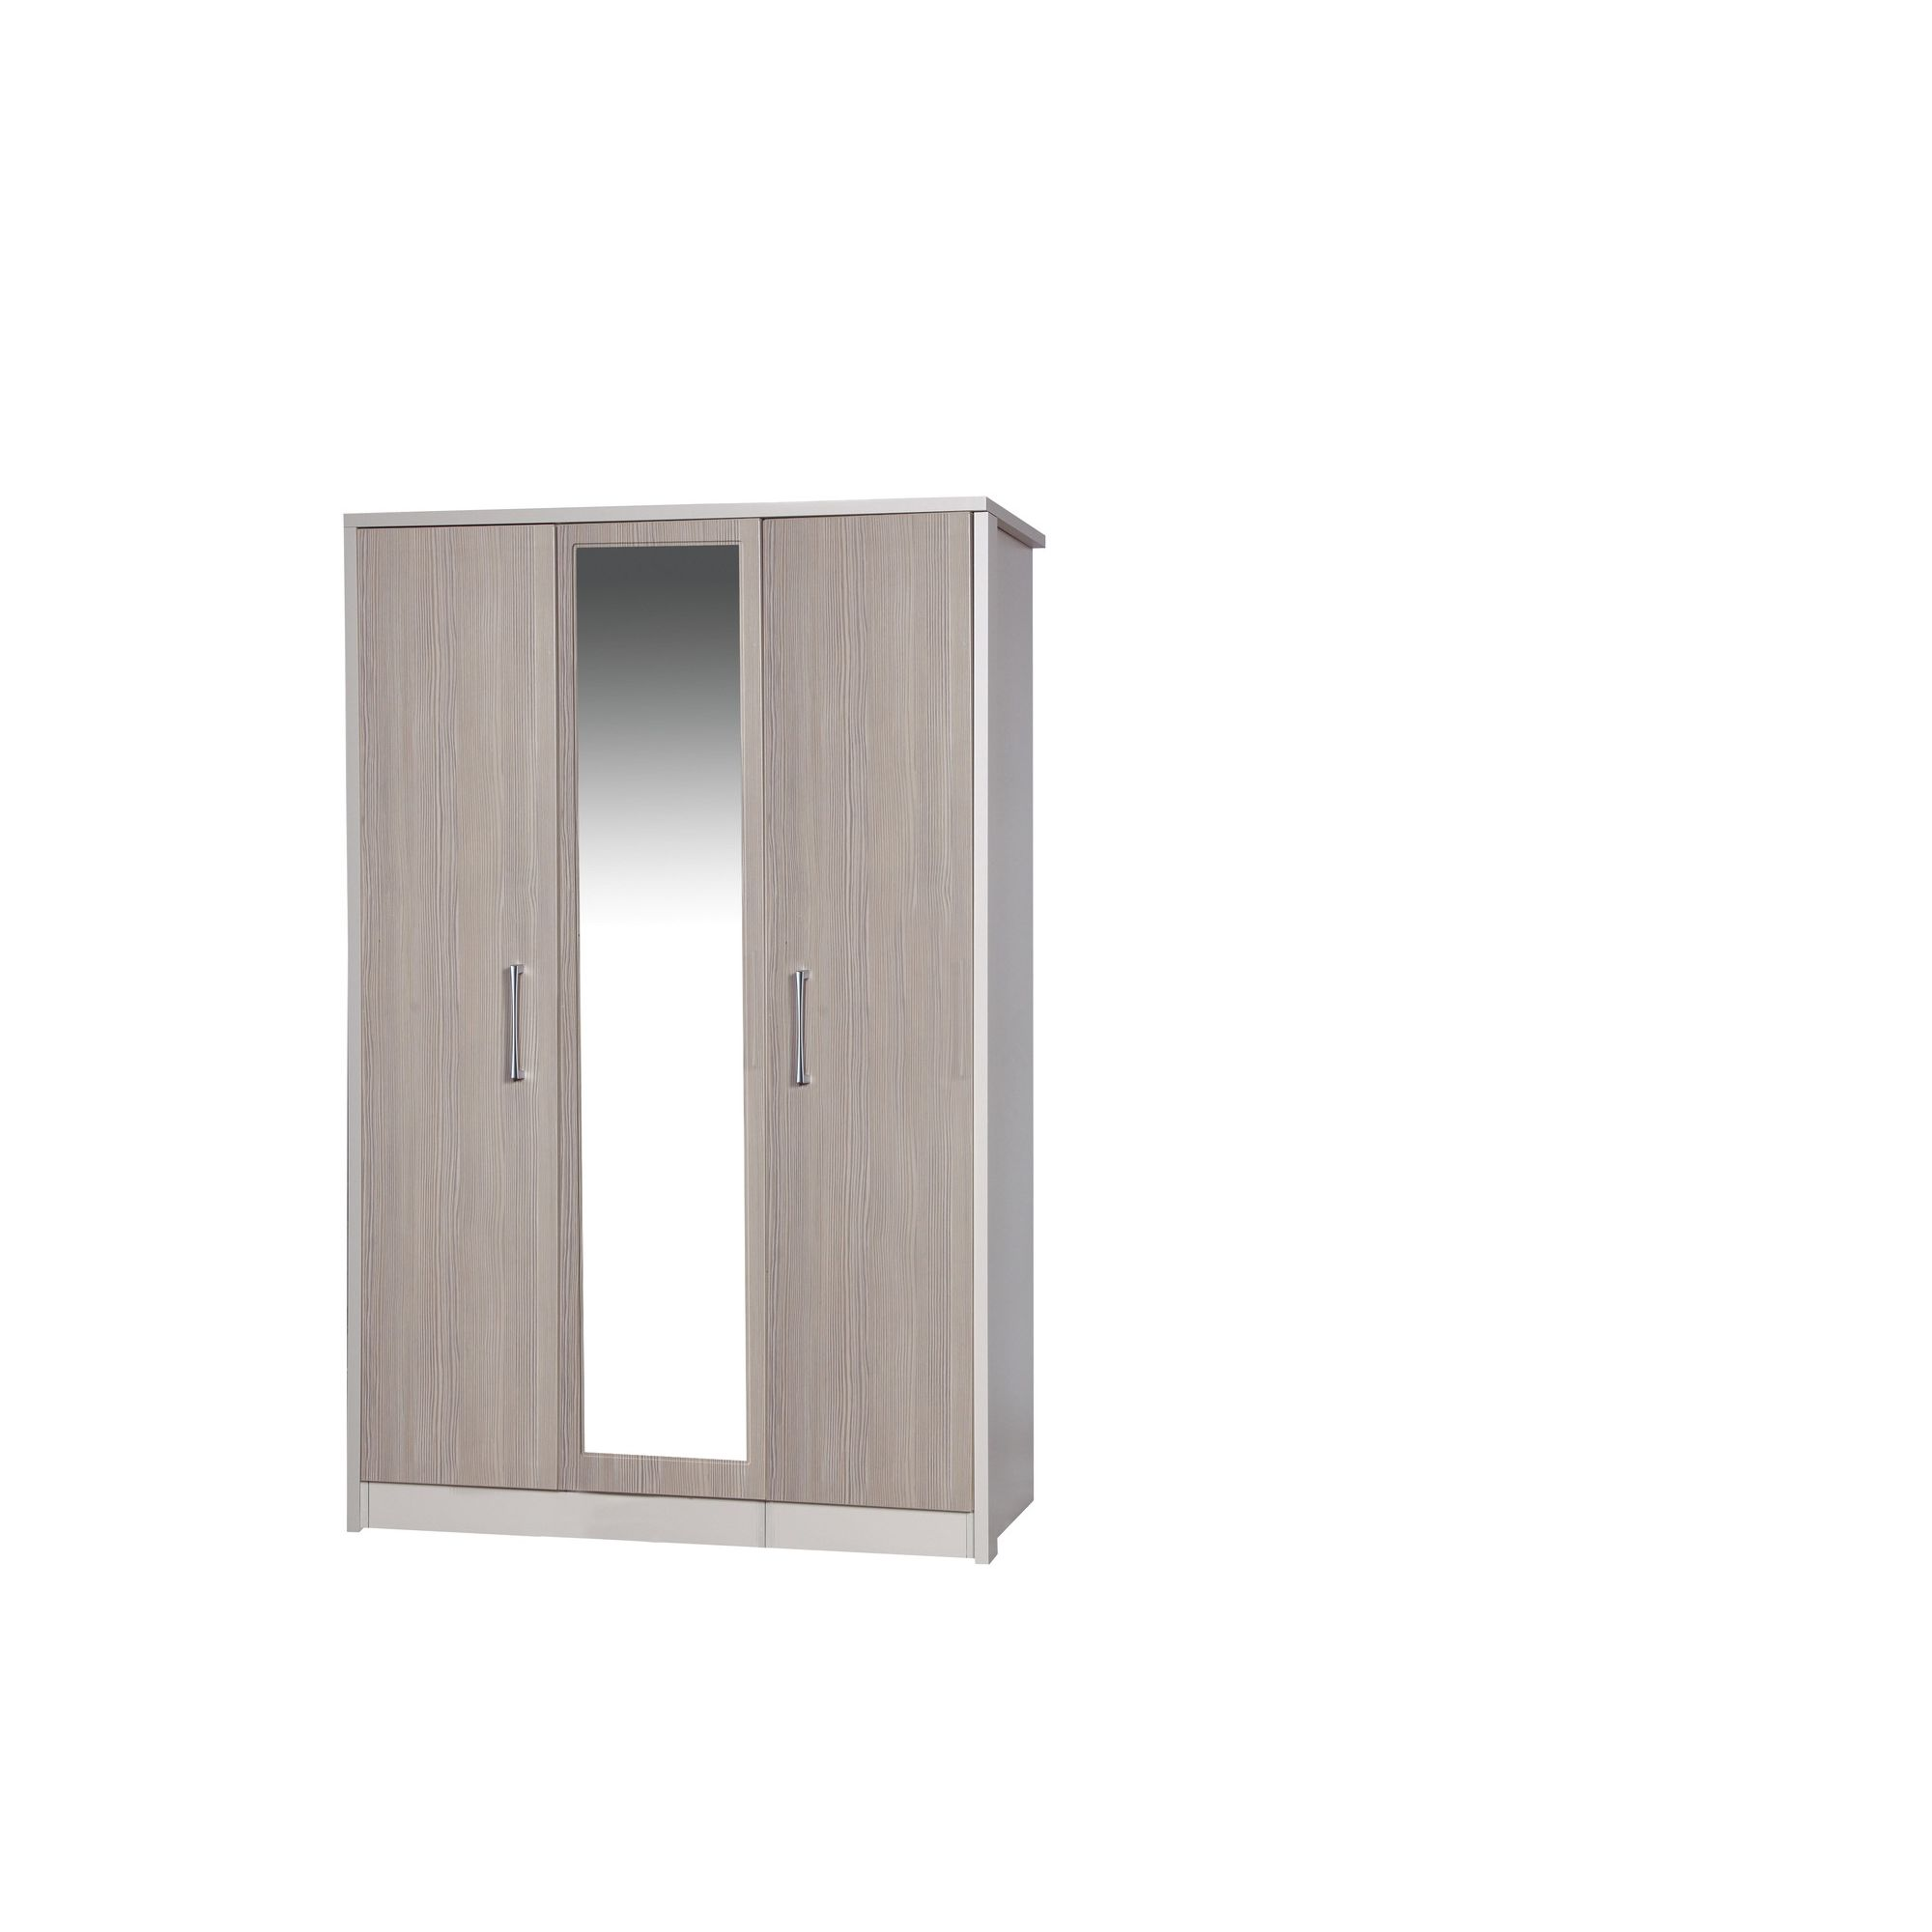 Alto Furniture Avola 3 Door Wardrobe with Mirror - Cream Carcass With Champagne Avola at Tesco Direct